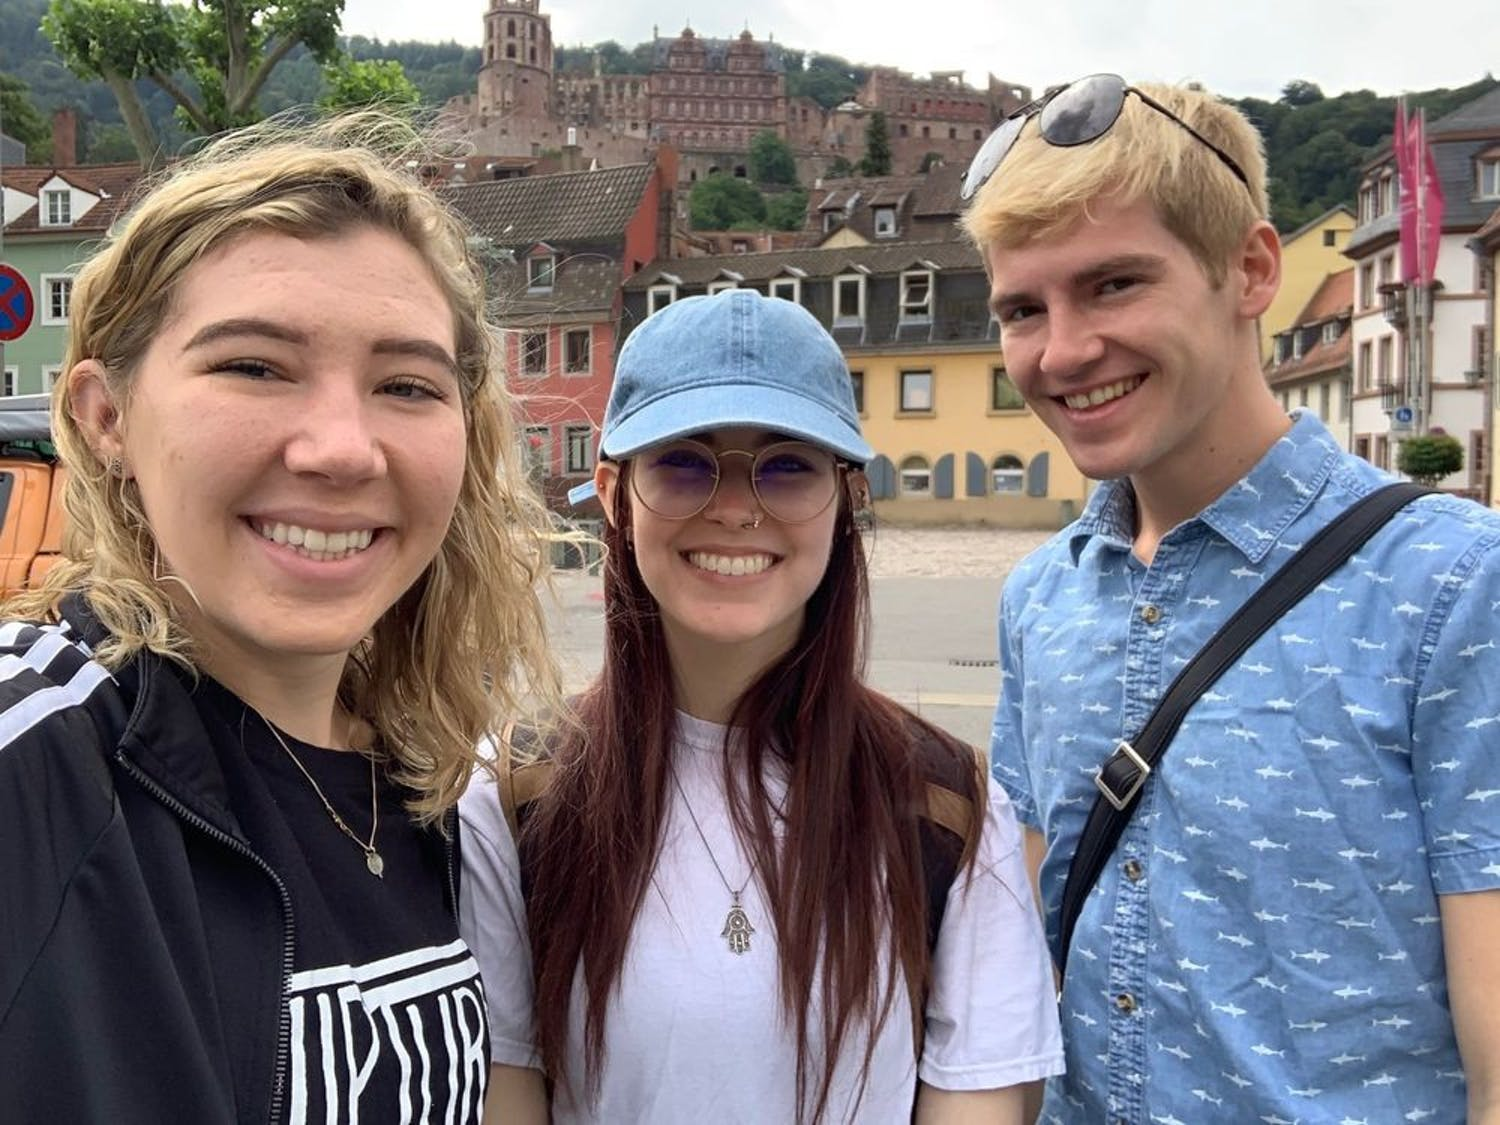 Kelly Cavaliere currently studying abroad for 6 months in Germany at the Universität Mannheim.